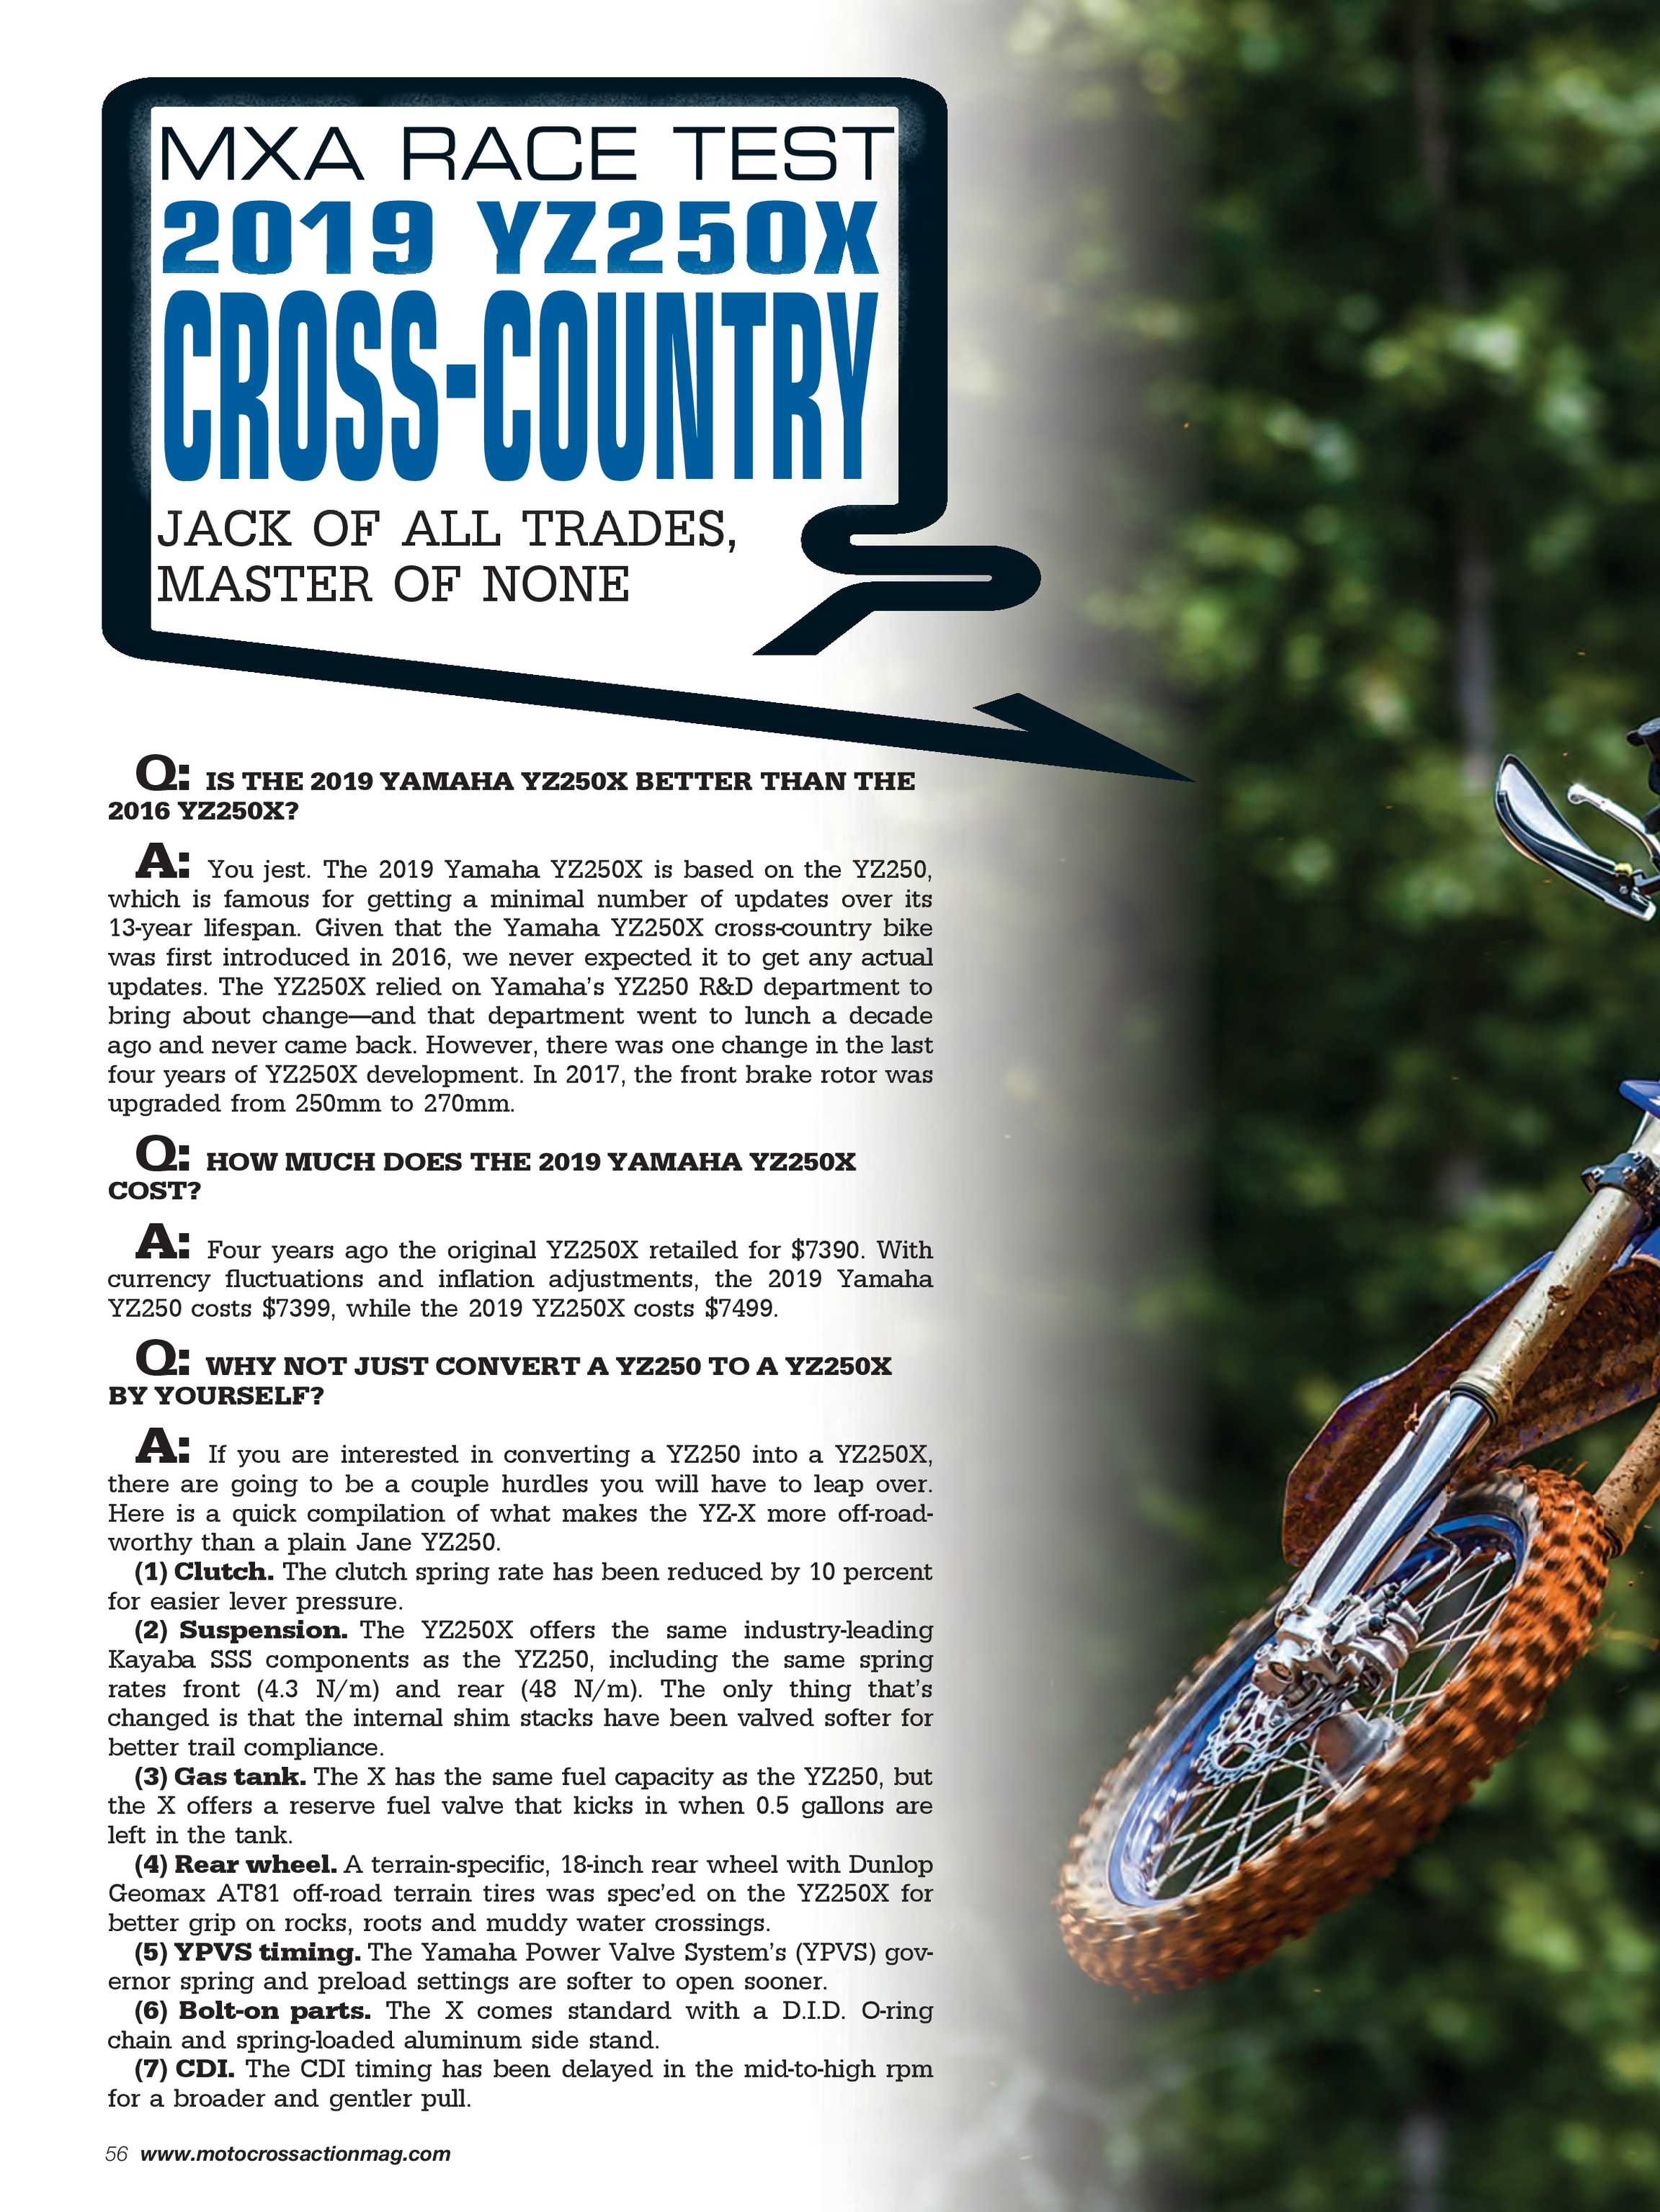 Motocross Action Magazine - May 2019 - page 56